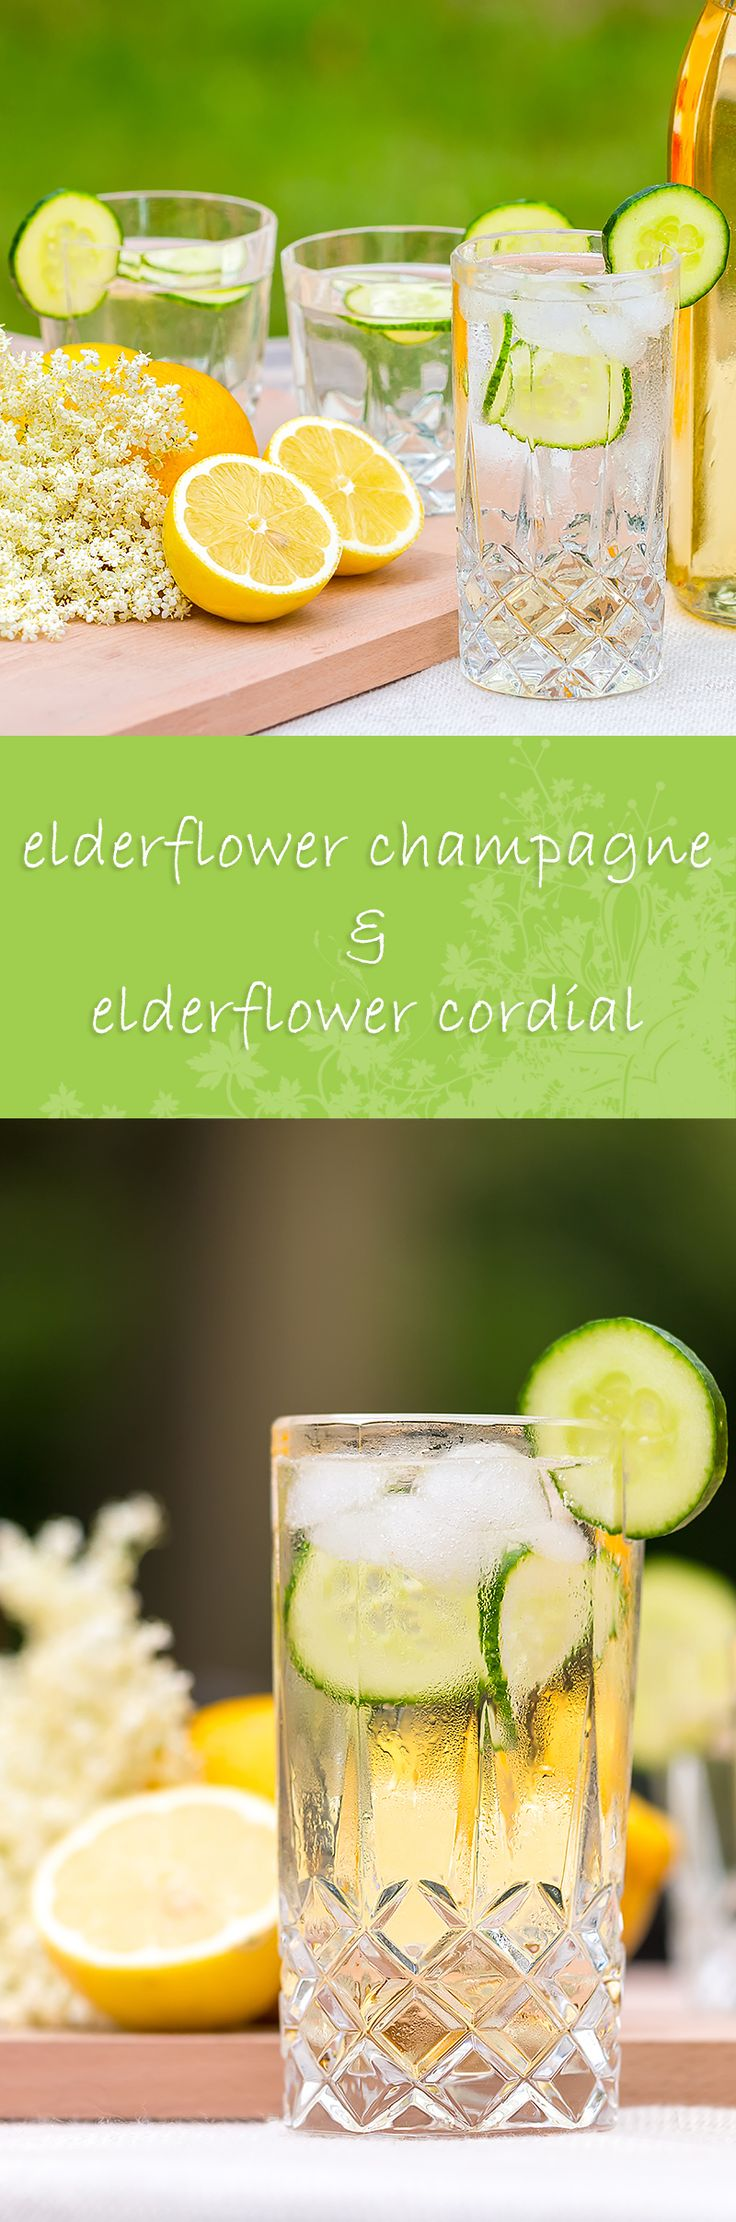 Elderflower champagne recipe: 4 Simple Ingredients and you have elderflower champagne, what's not to like. The core ingredient is free and the rest of the ingredients are store cupboard vavourites!